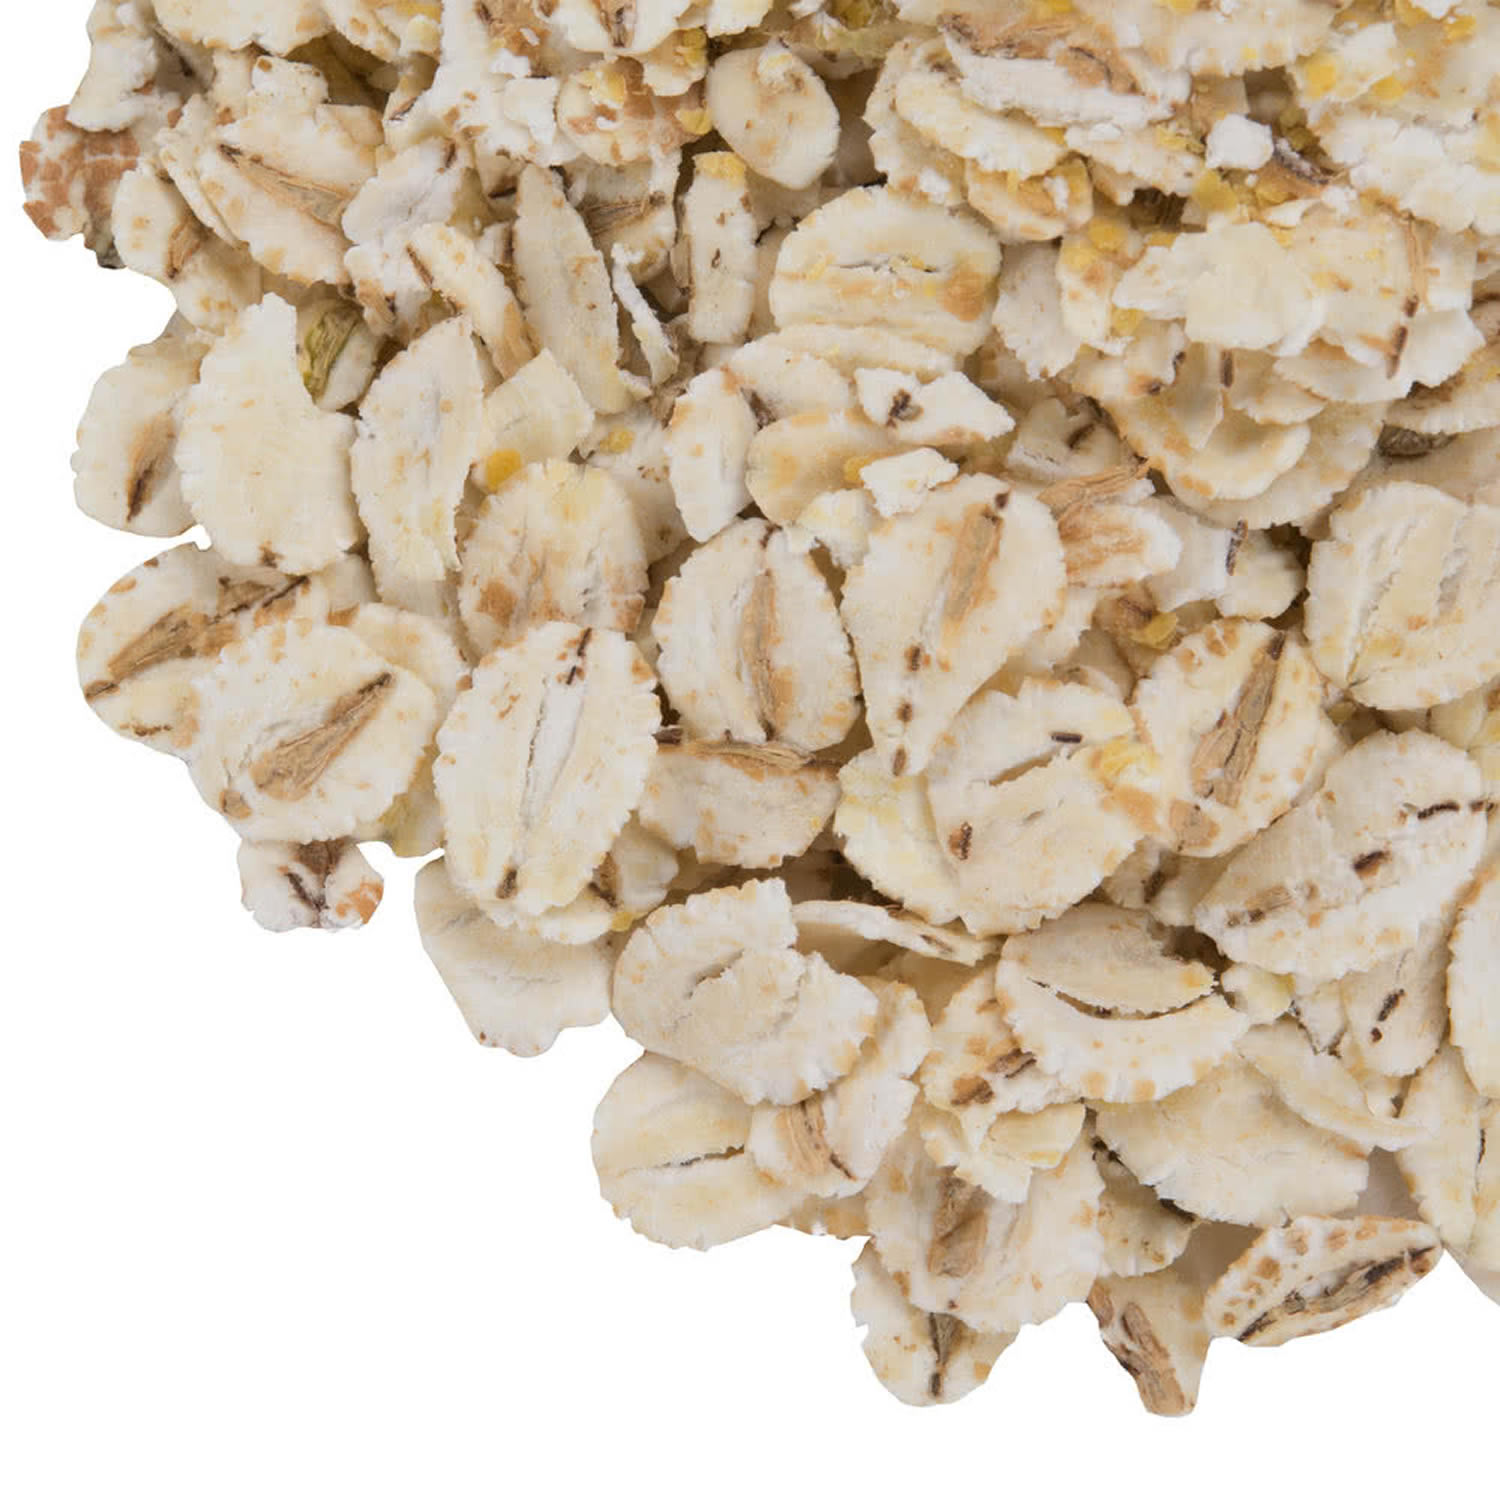 Barley grits: the benefits and harm. Barley grain from what is produced 15